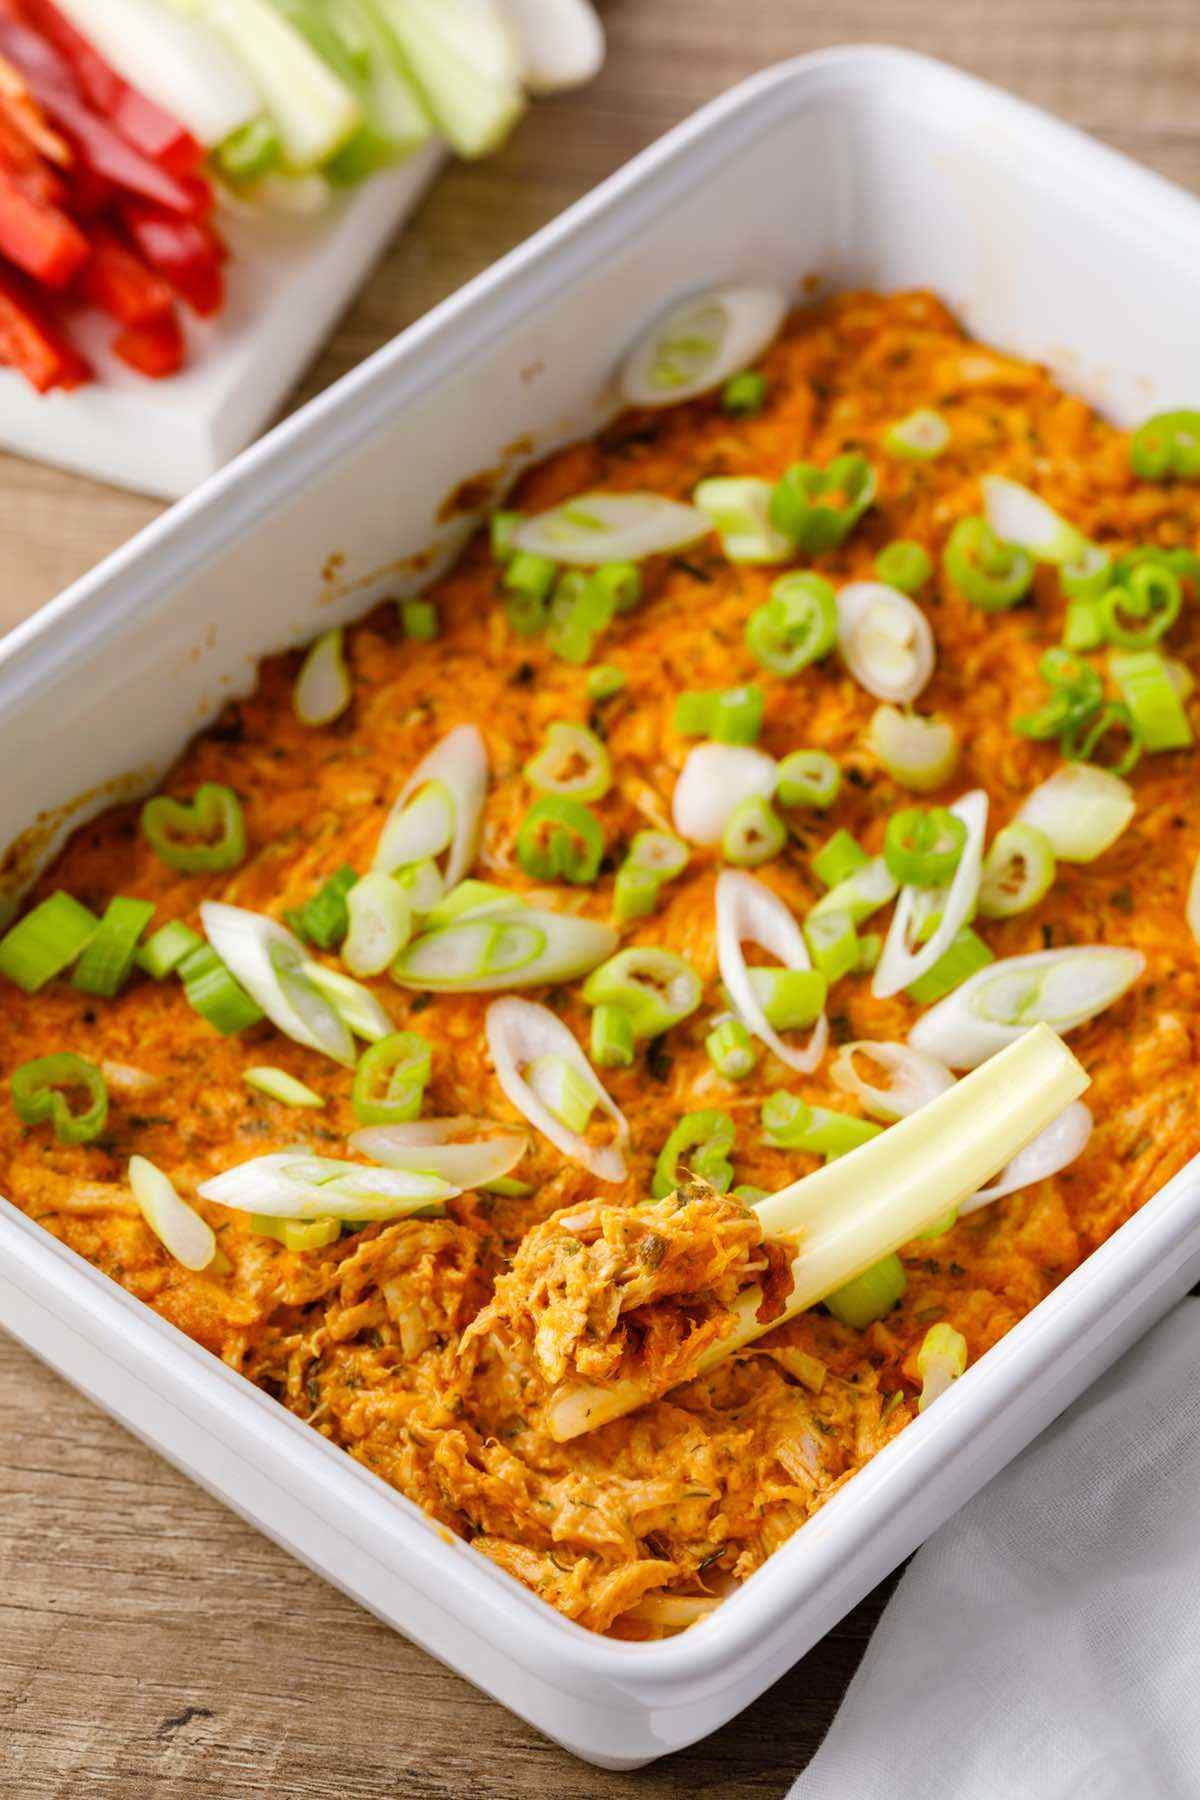 baked shredded chicken dip